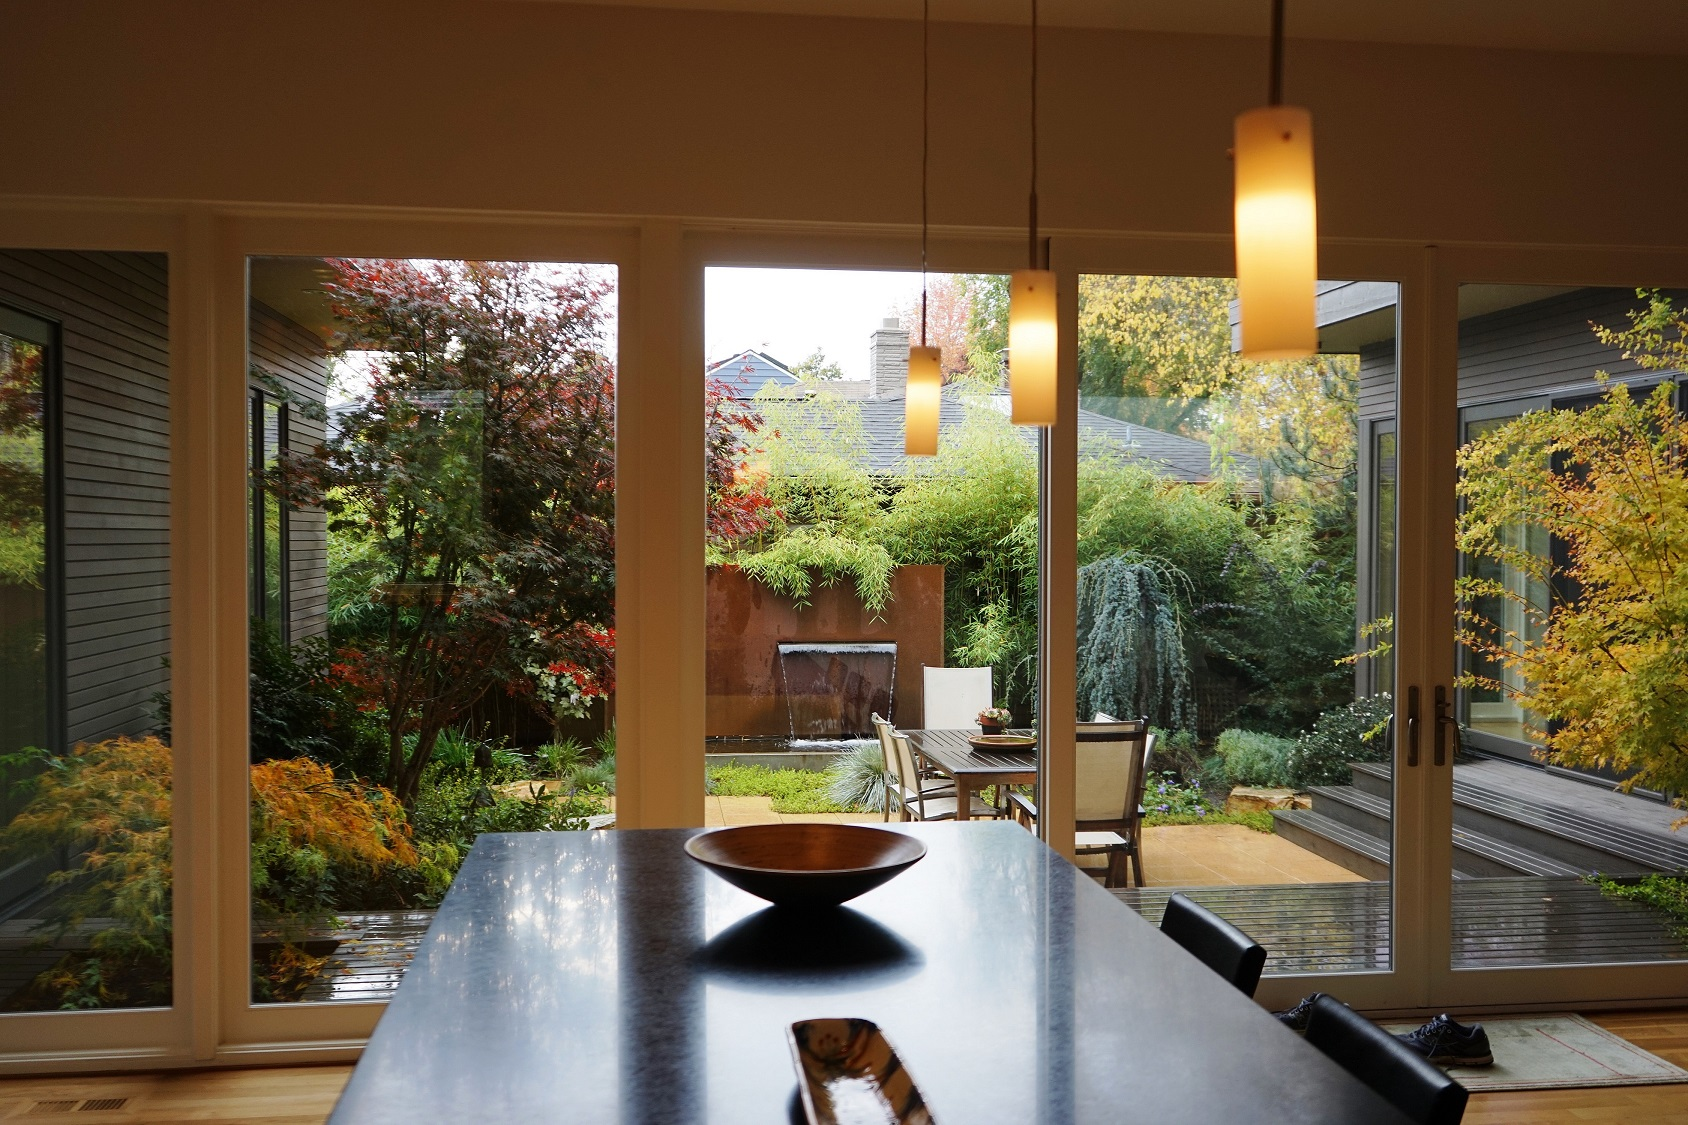 6th Annual Seattle Ma Ds Home Tour Showcases Residential